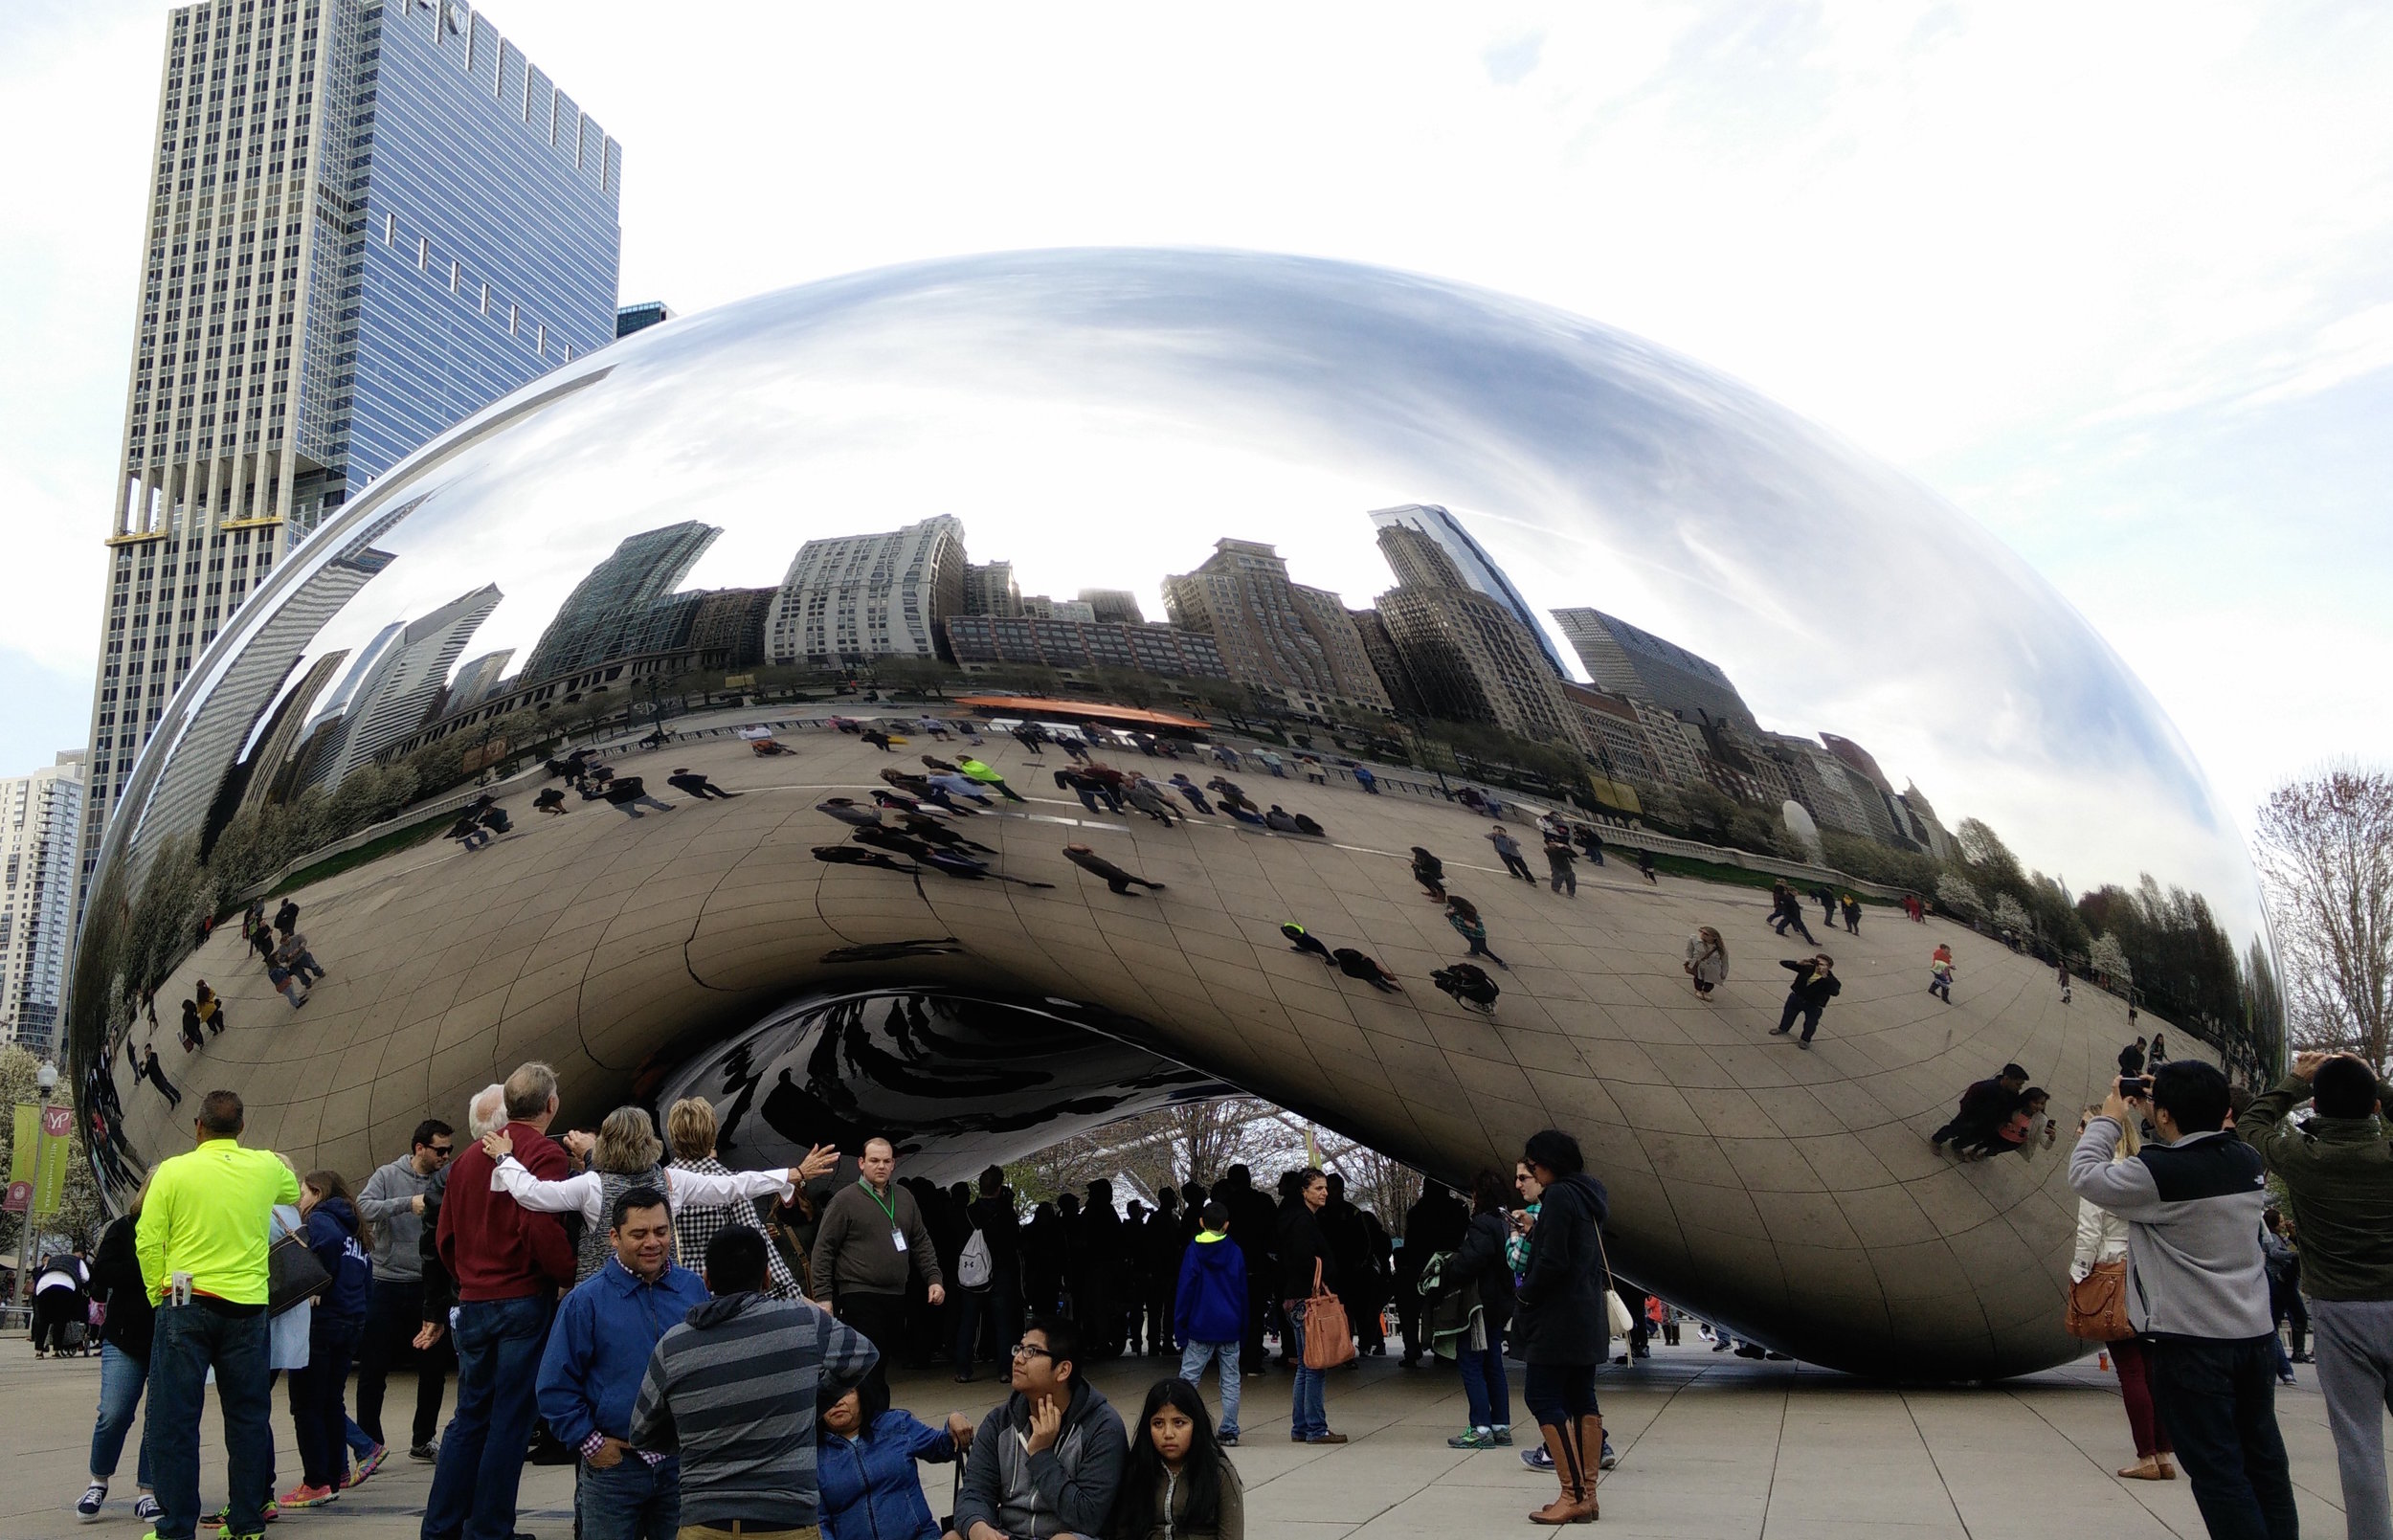 Cloud Gate by Anish Kapoor (Chicago)